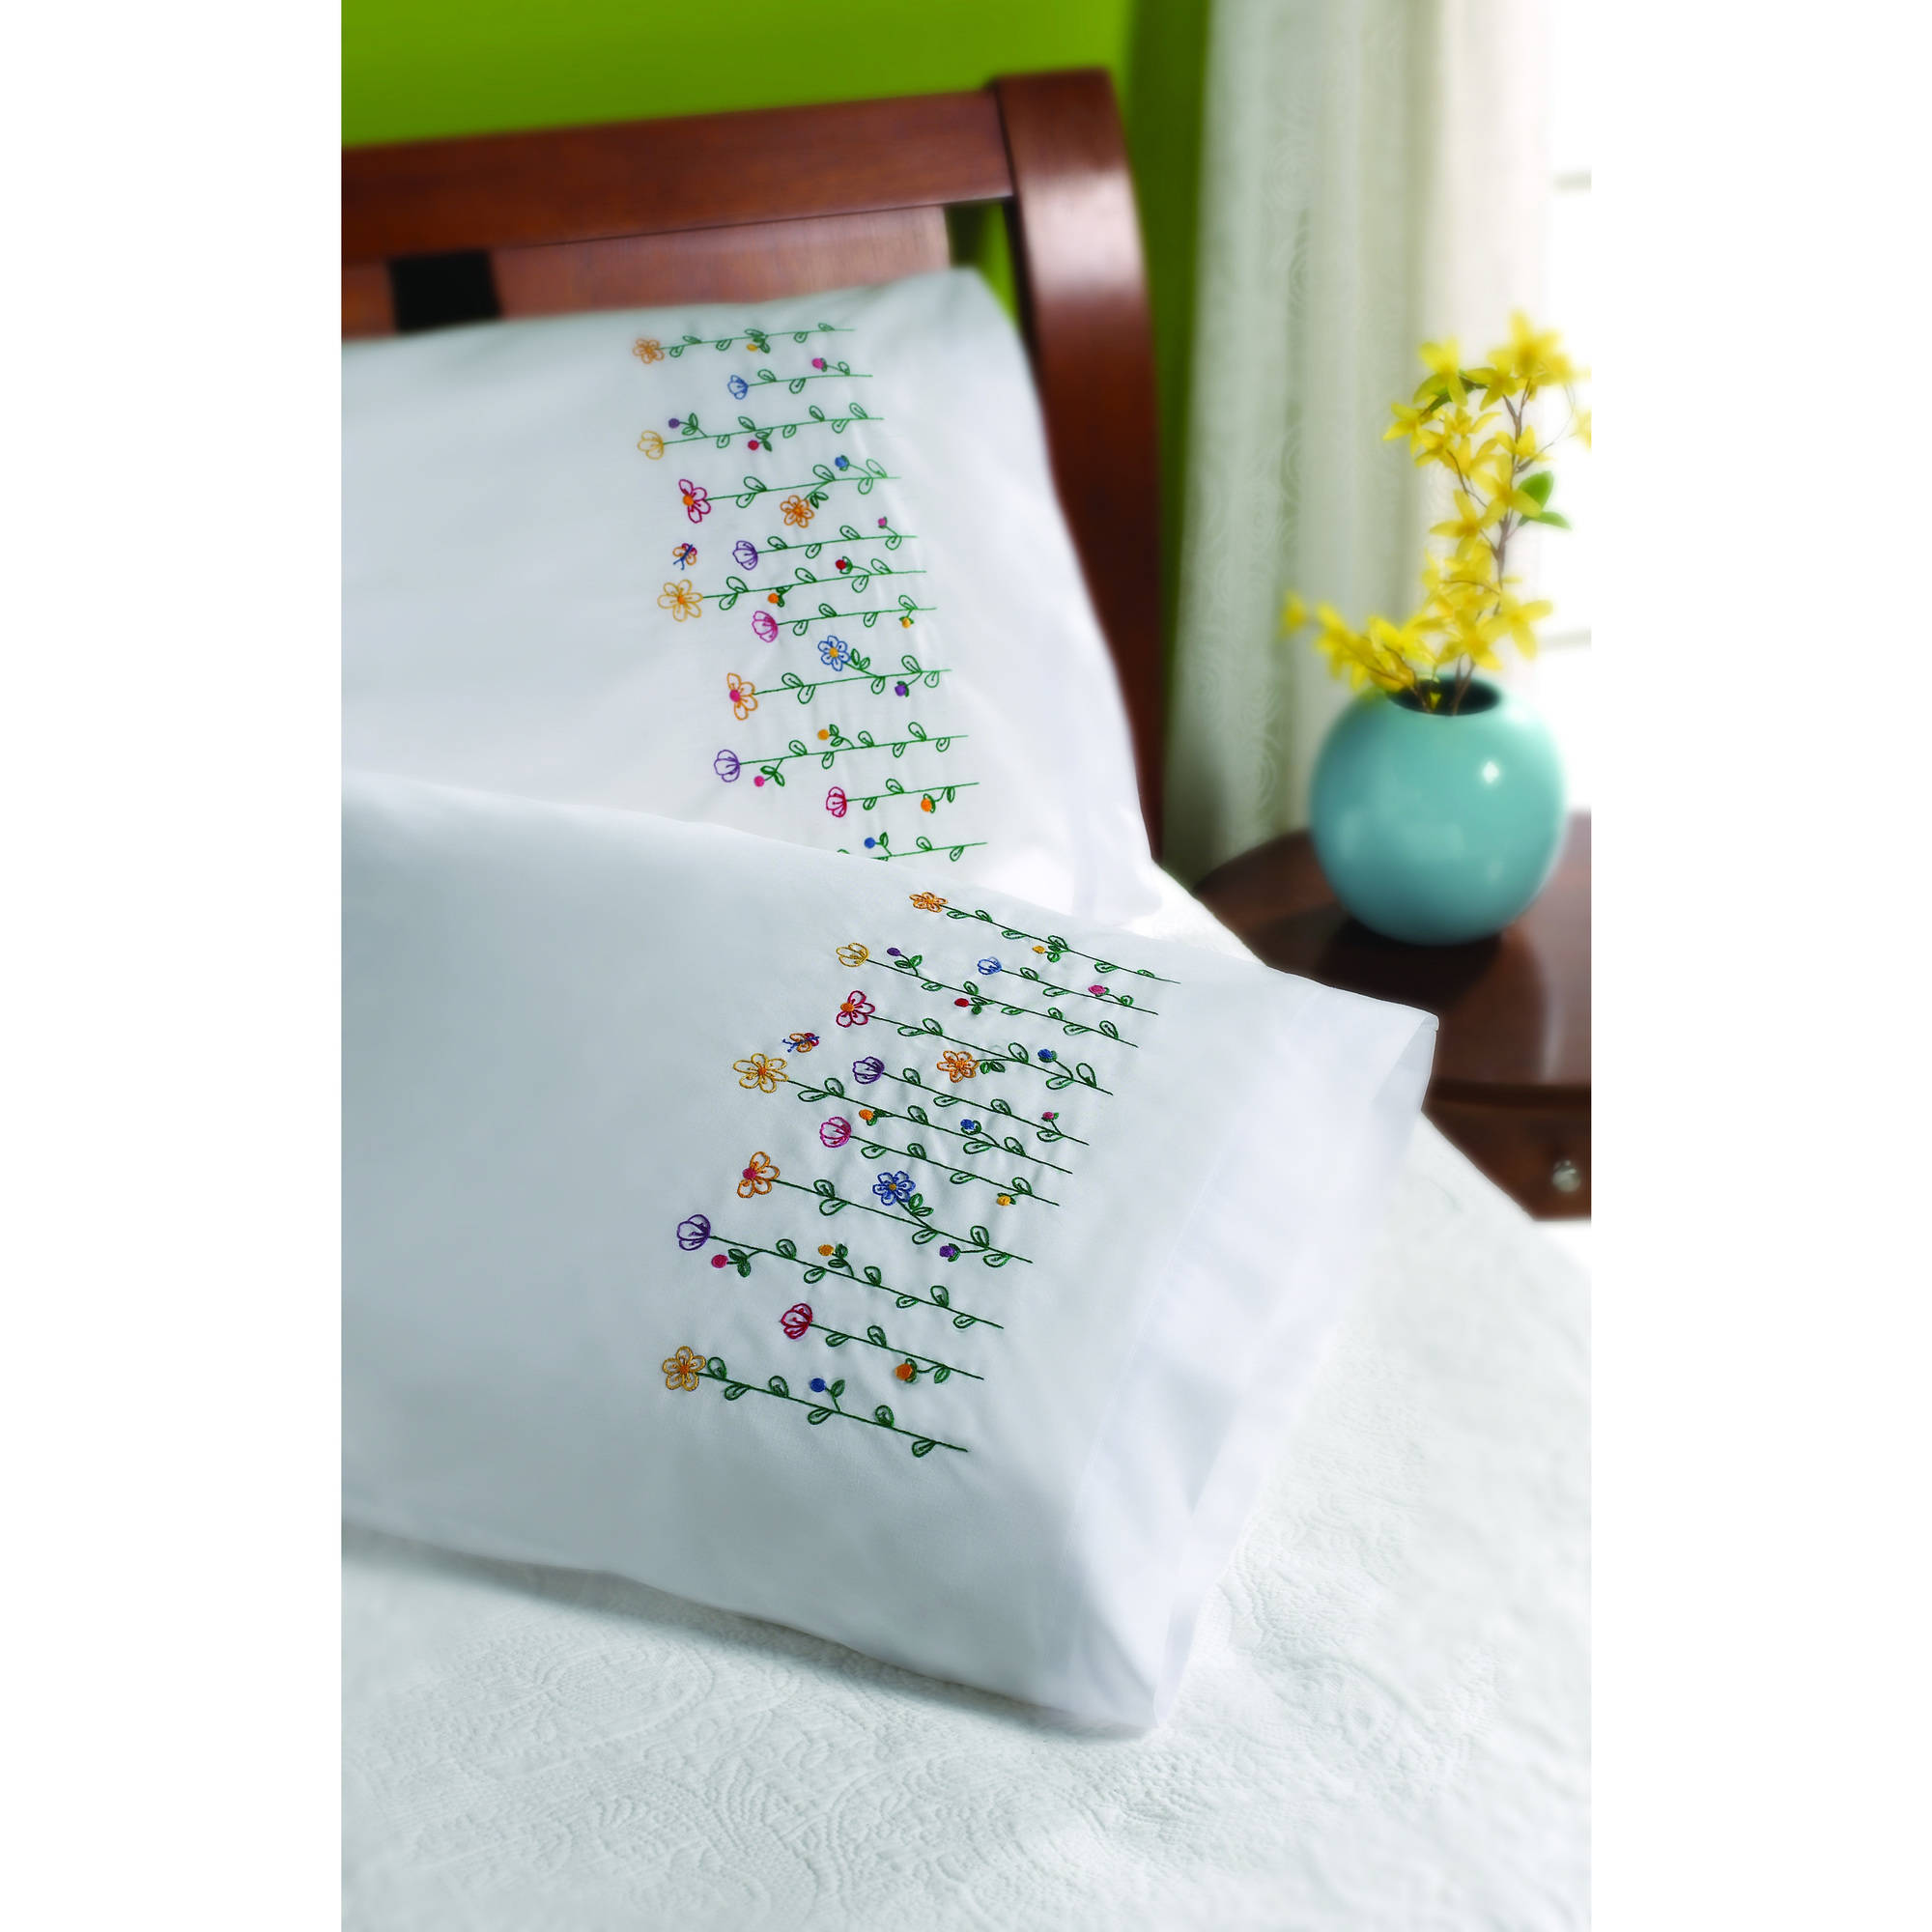 "Bucilla   Stamped Cross Stitch and Embroidery Pillowcase Pair Kit by Plaid, Tall   Flowers, Set of 2, 30"" x 20"" each"